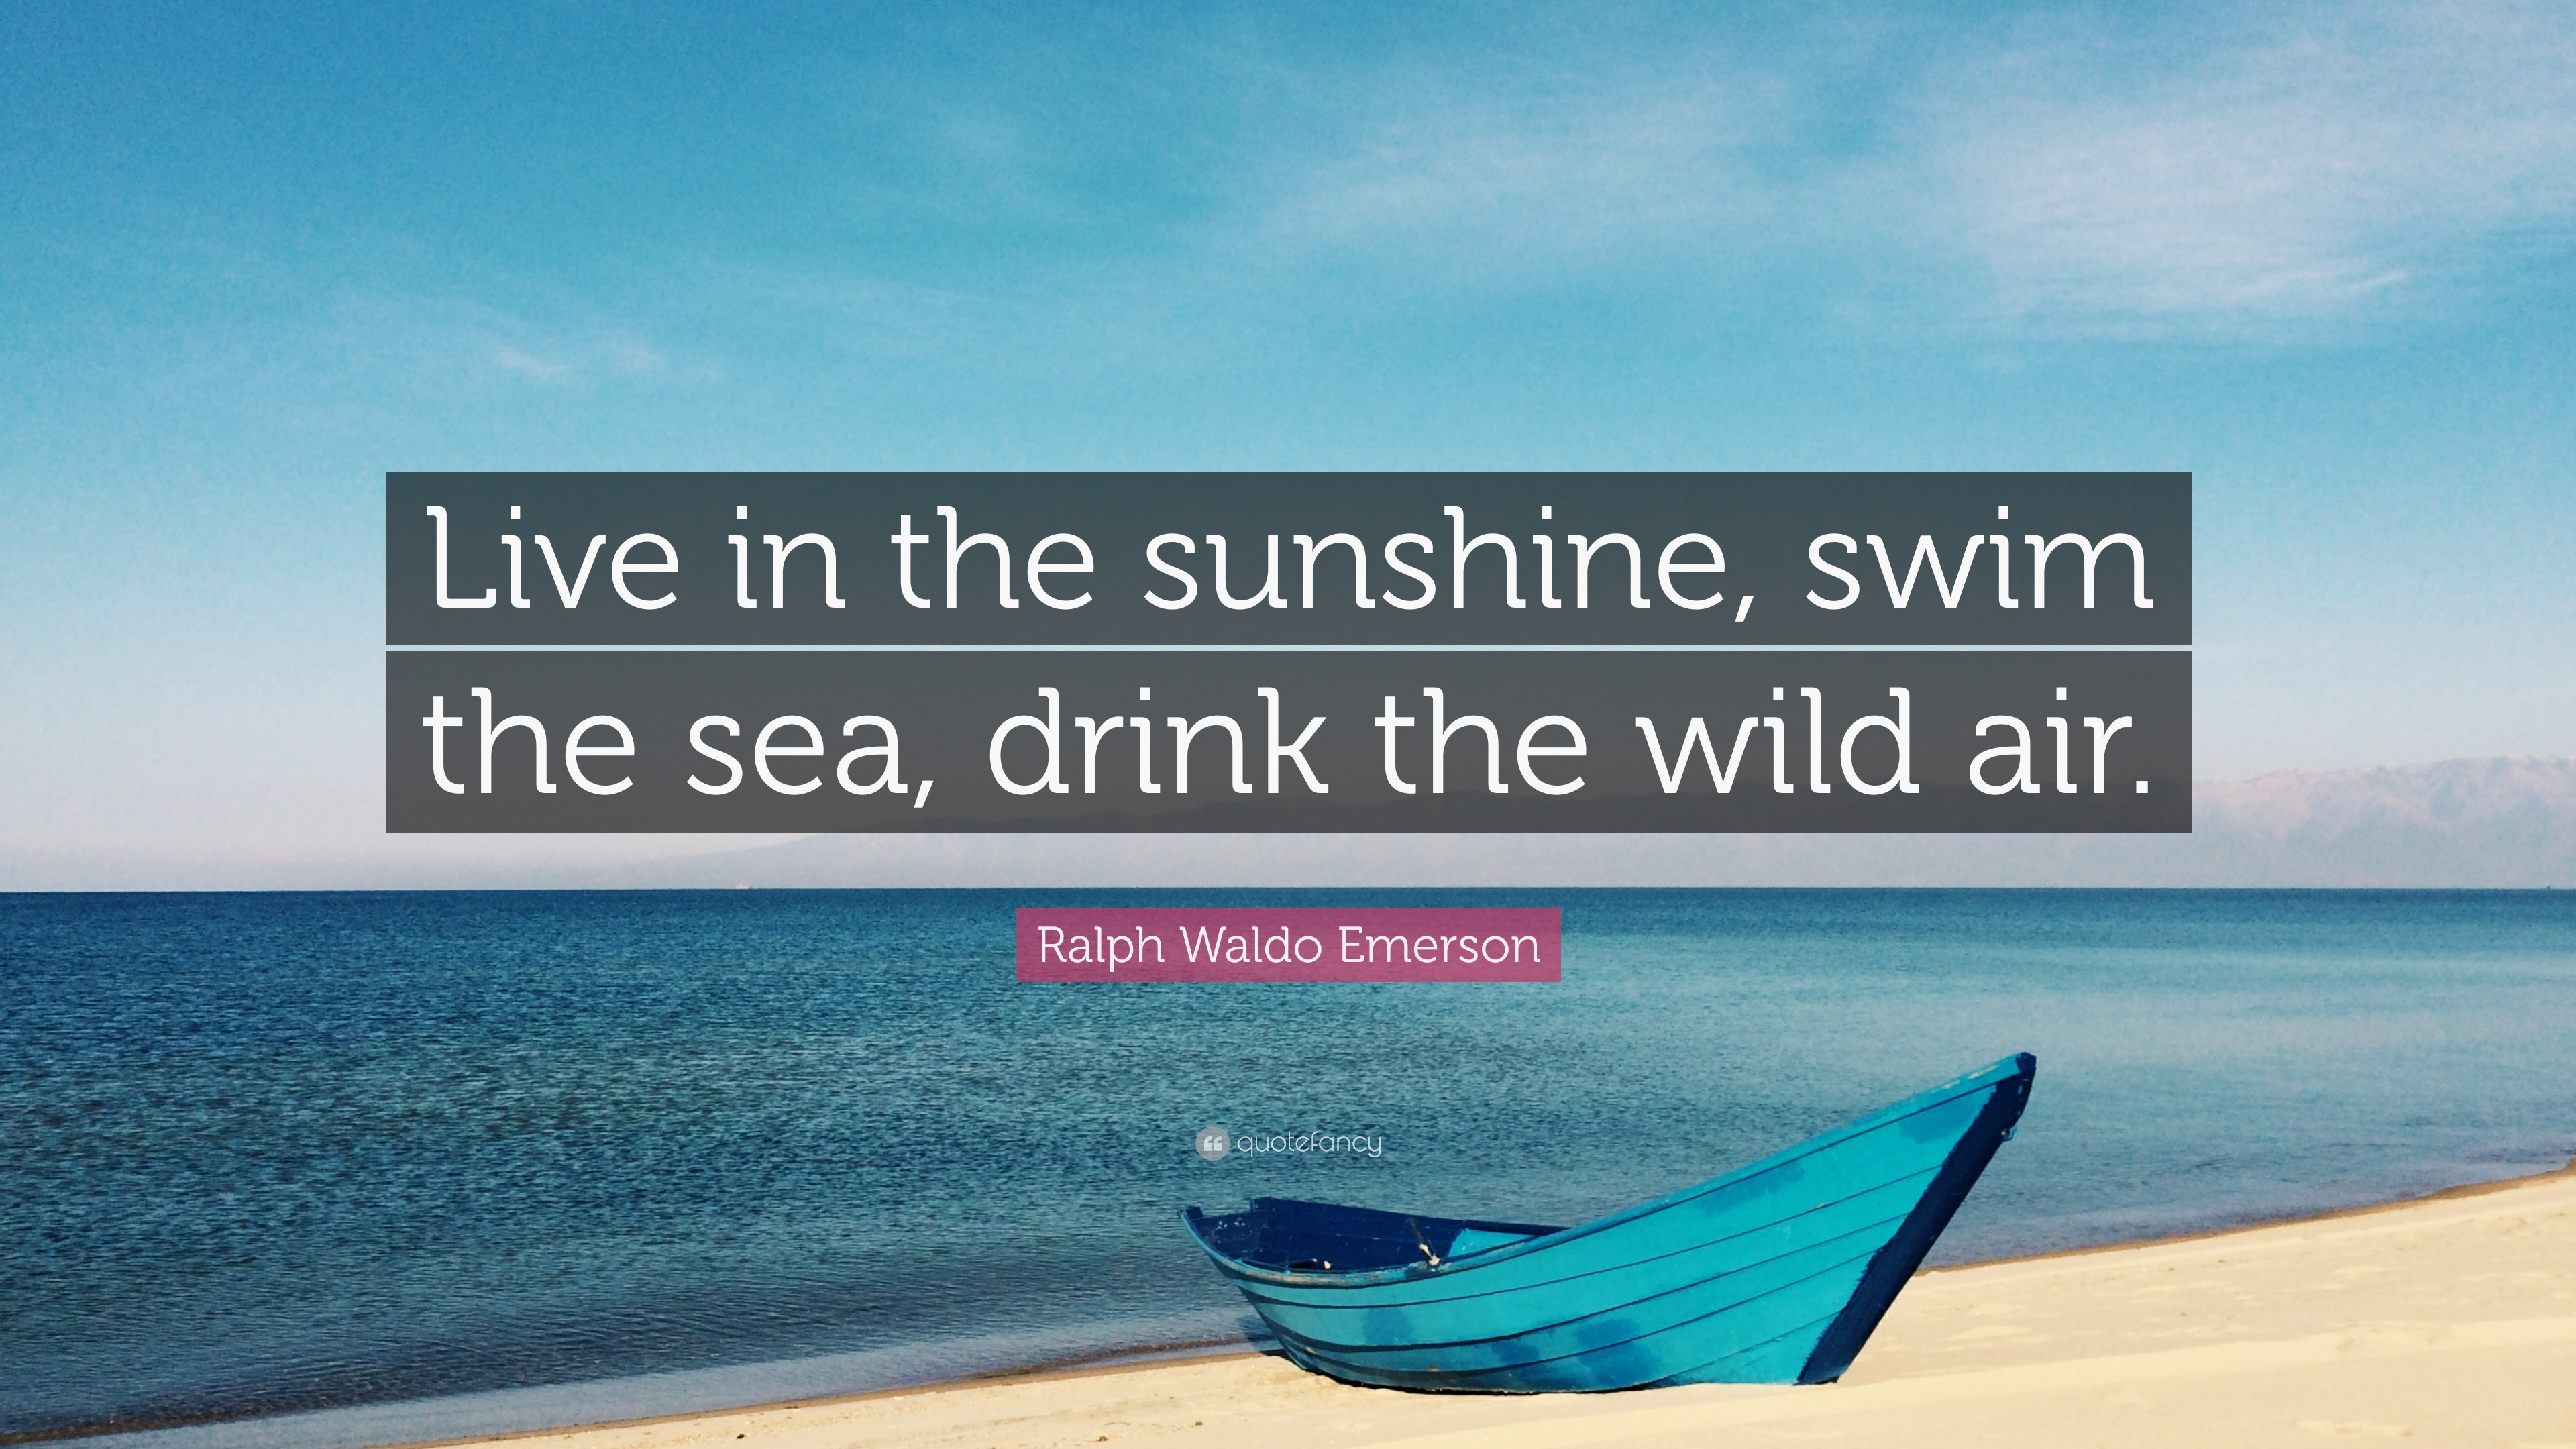 Ordinaire Ralph Waldo Emerson Quote: U201cLive In The Sunshine, Swim The Sea, Drink